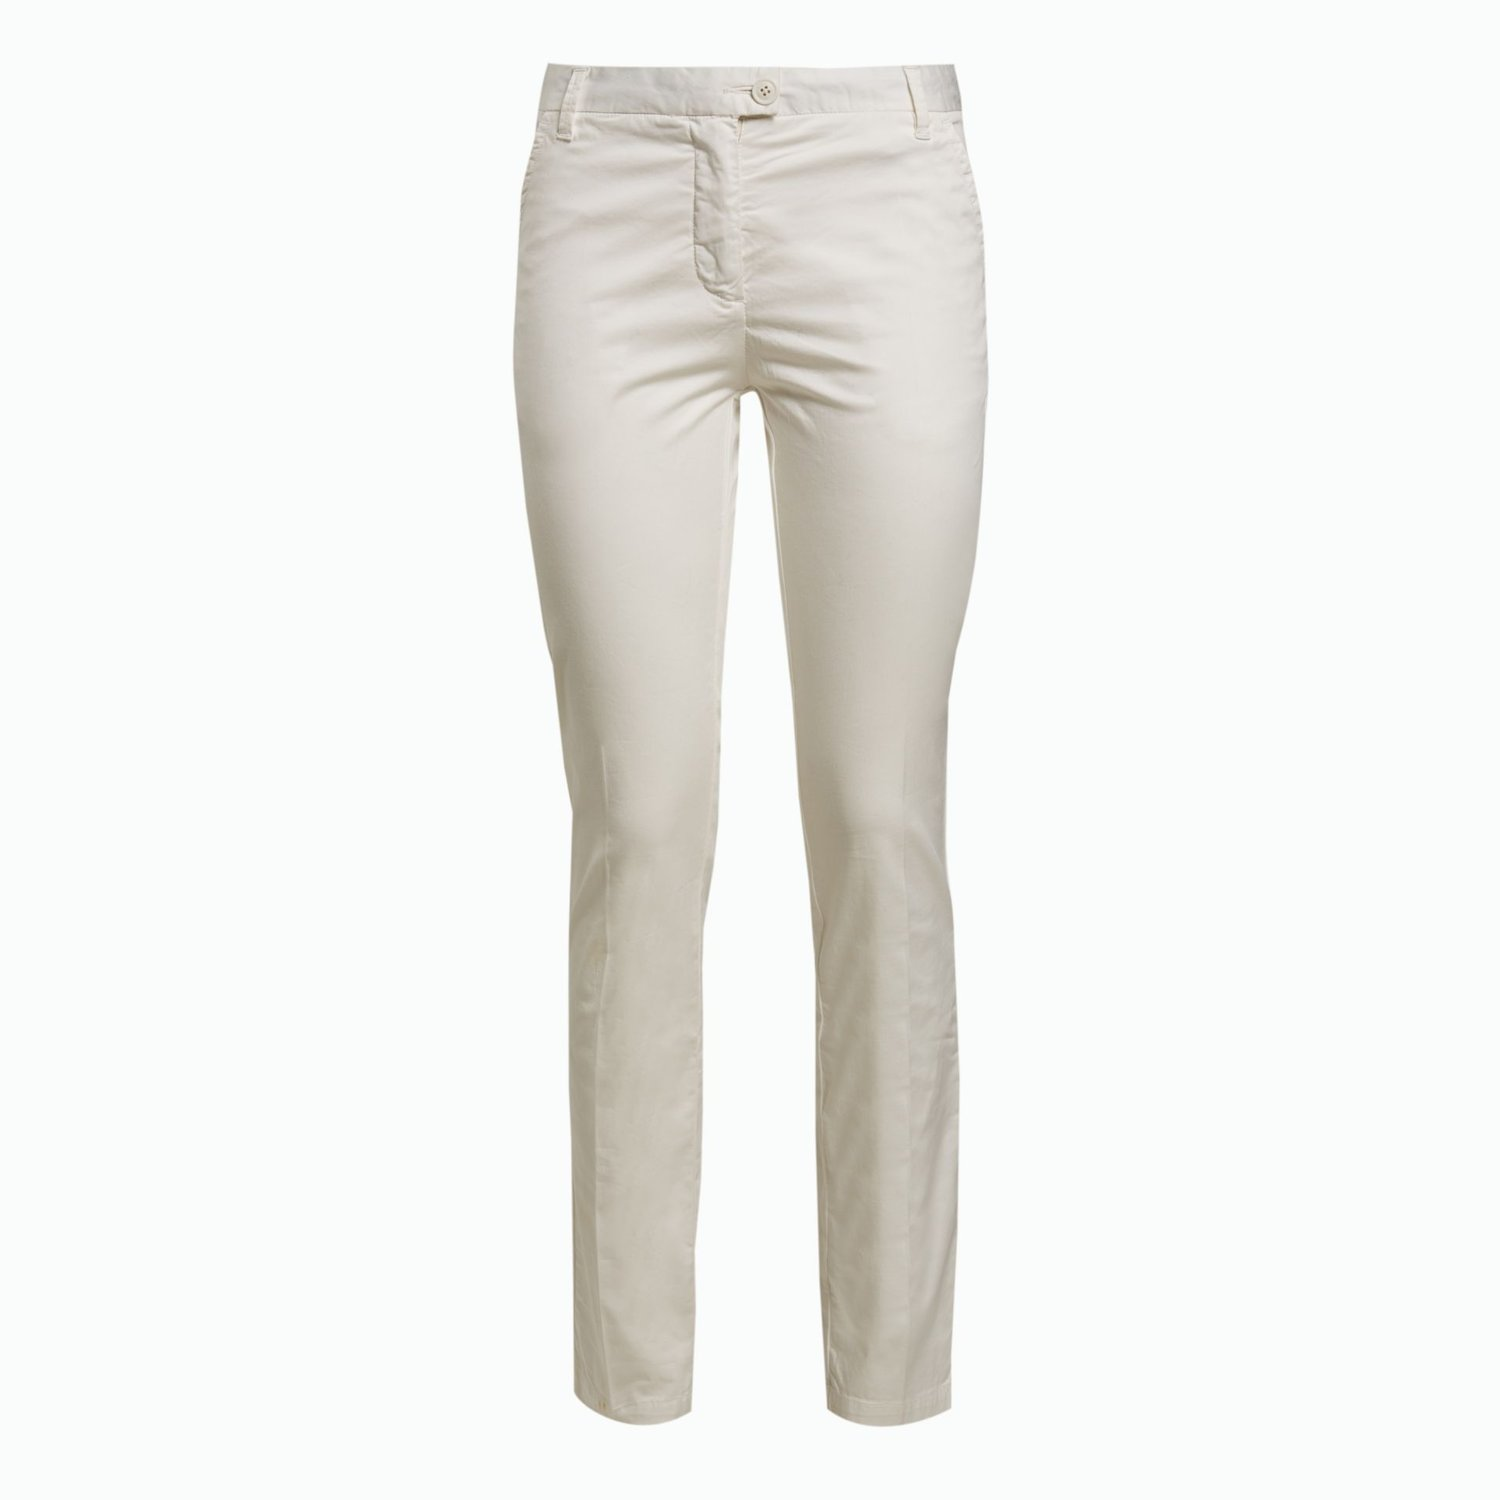 A2 Trousers - Sail White